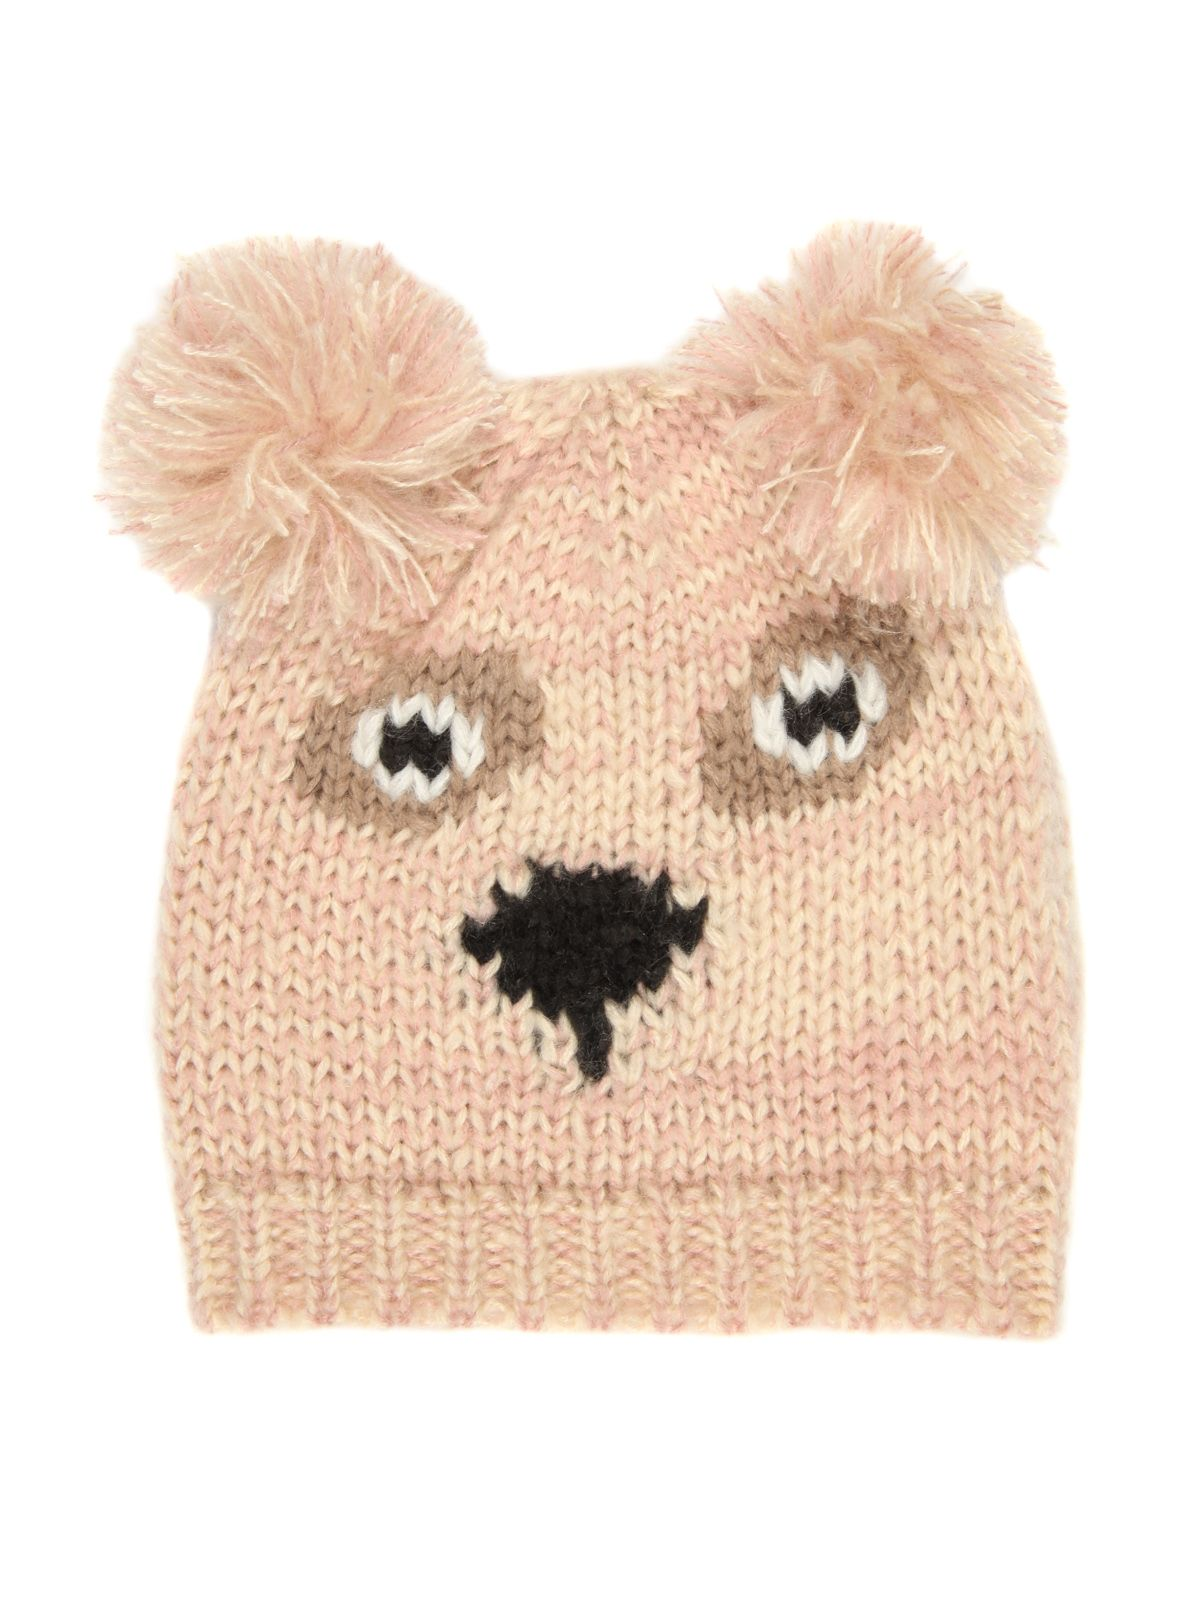 Knitted animal hat